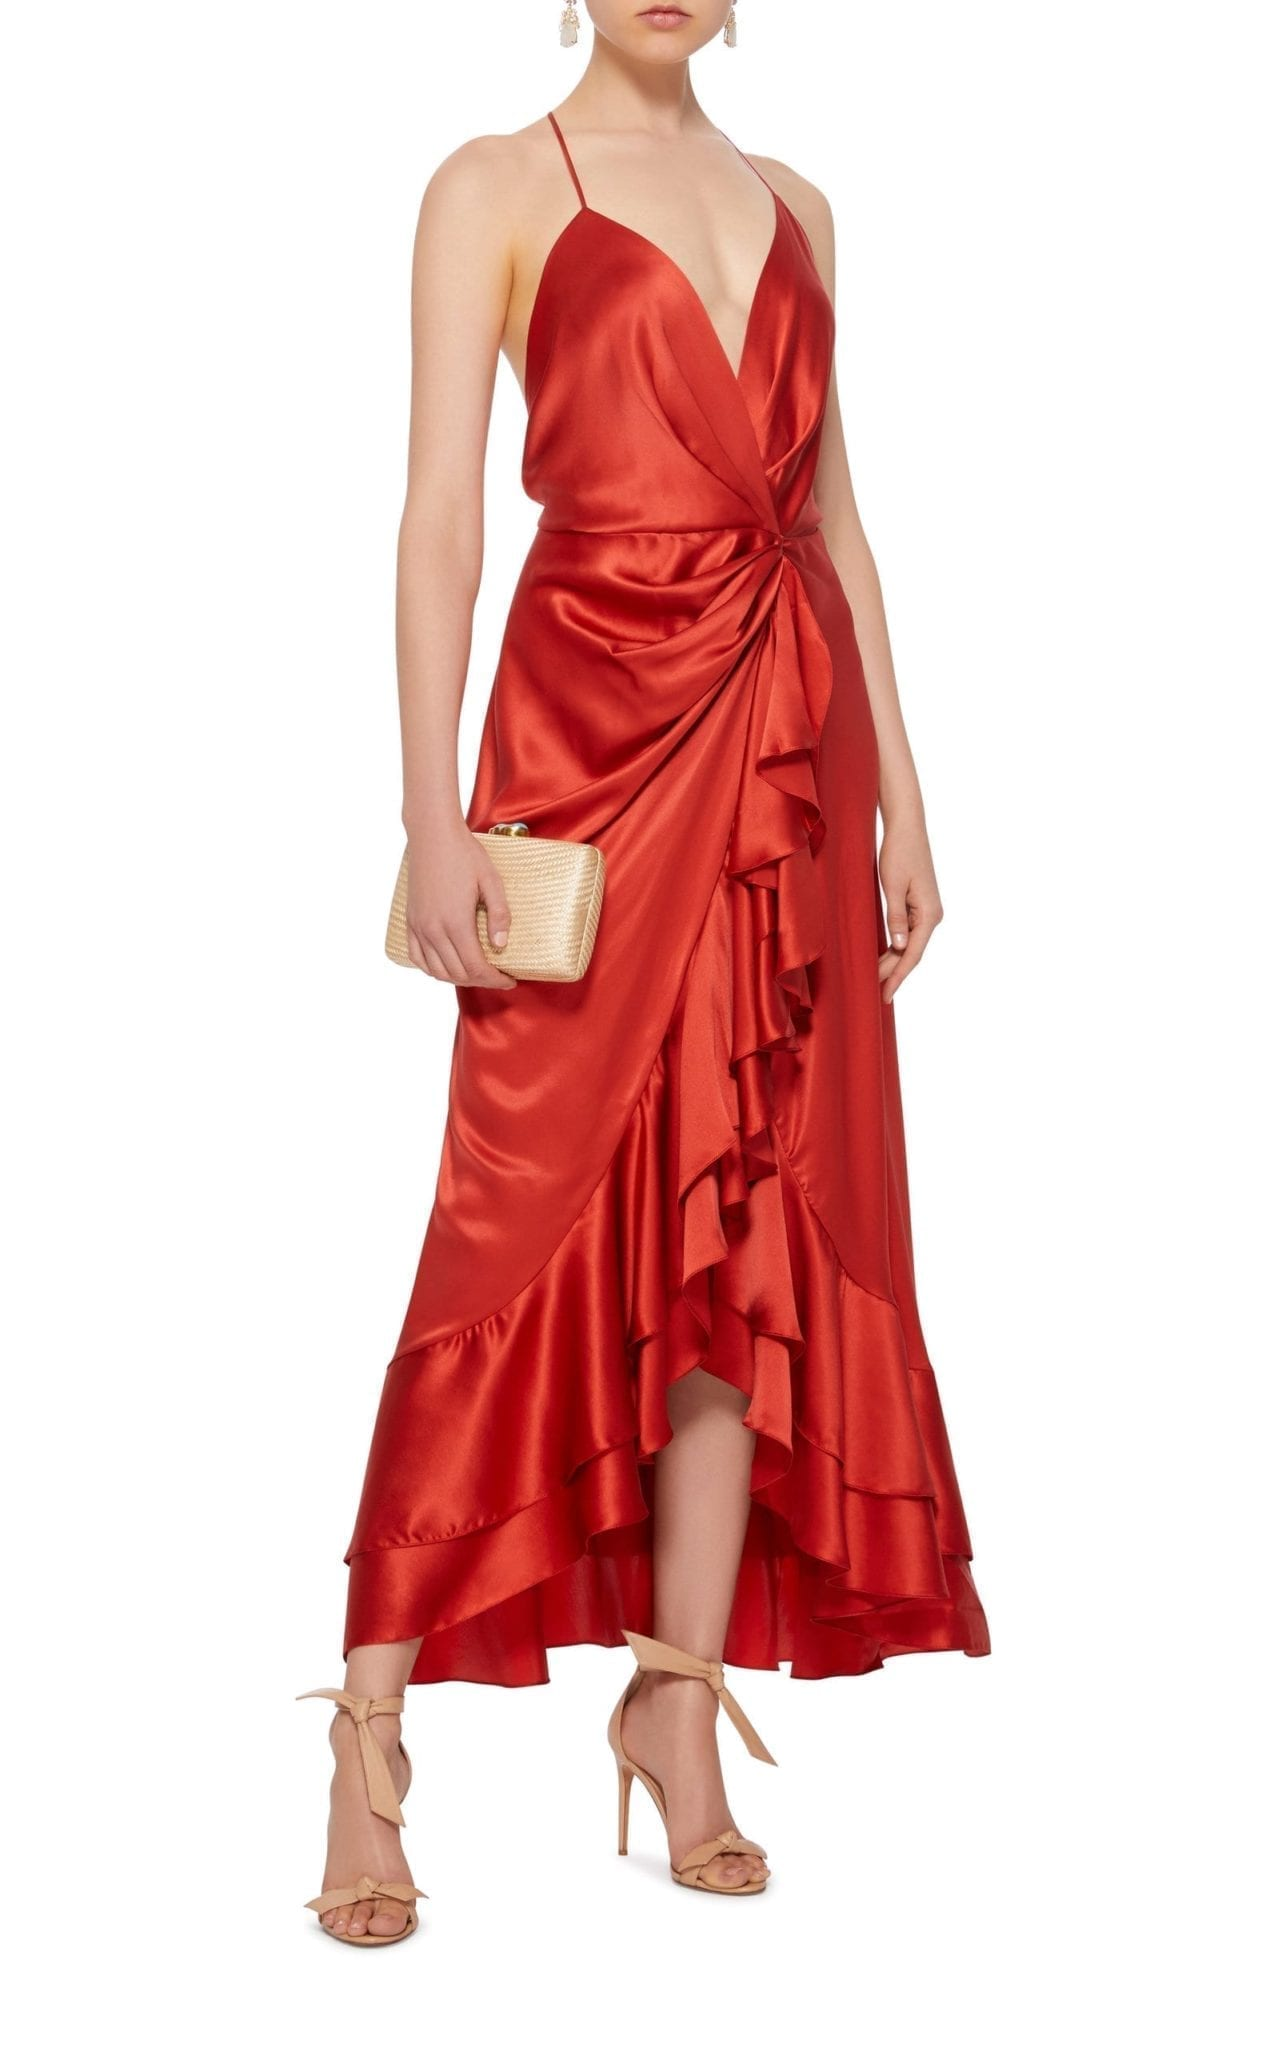 JOHANNA ORTIZ Perfumero Draped Silk-Charmeuse Red Dress